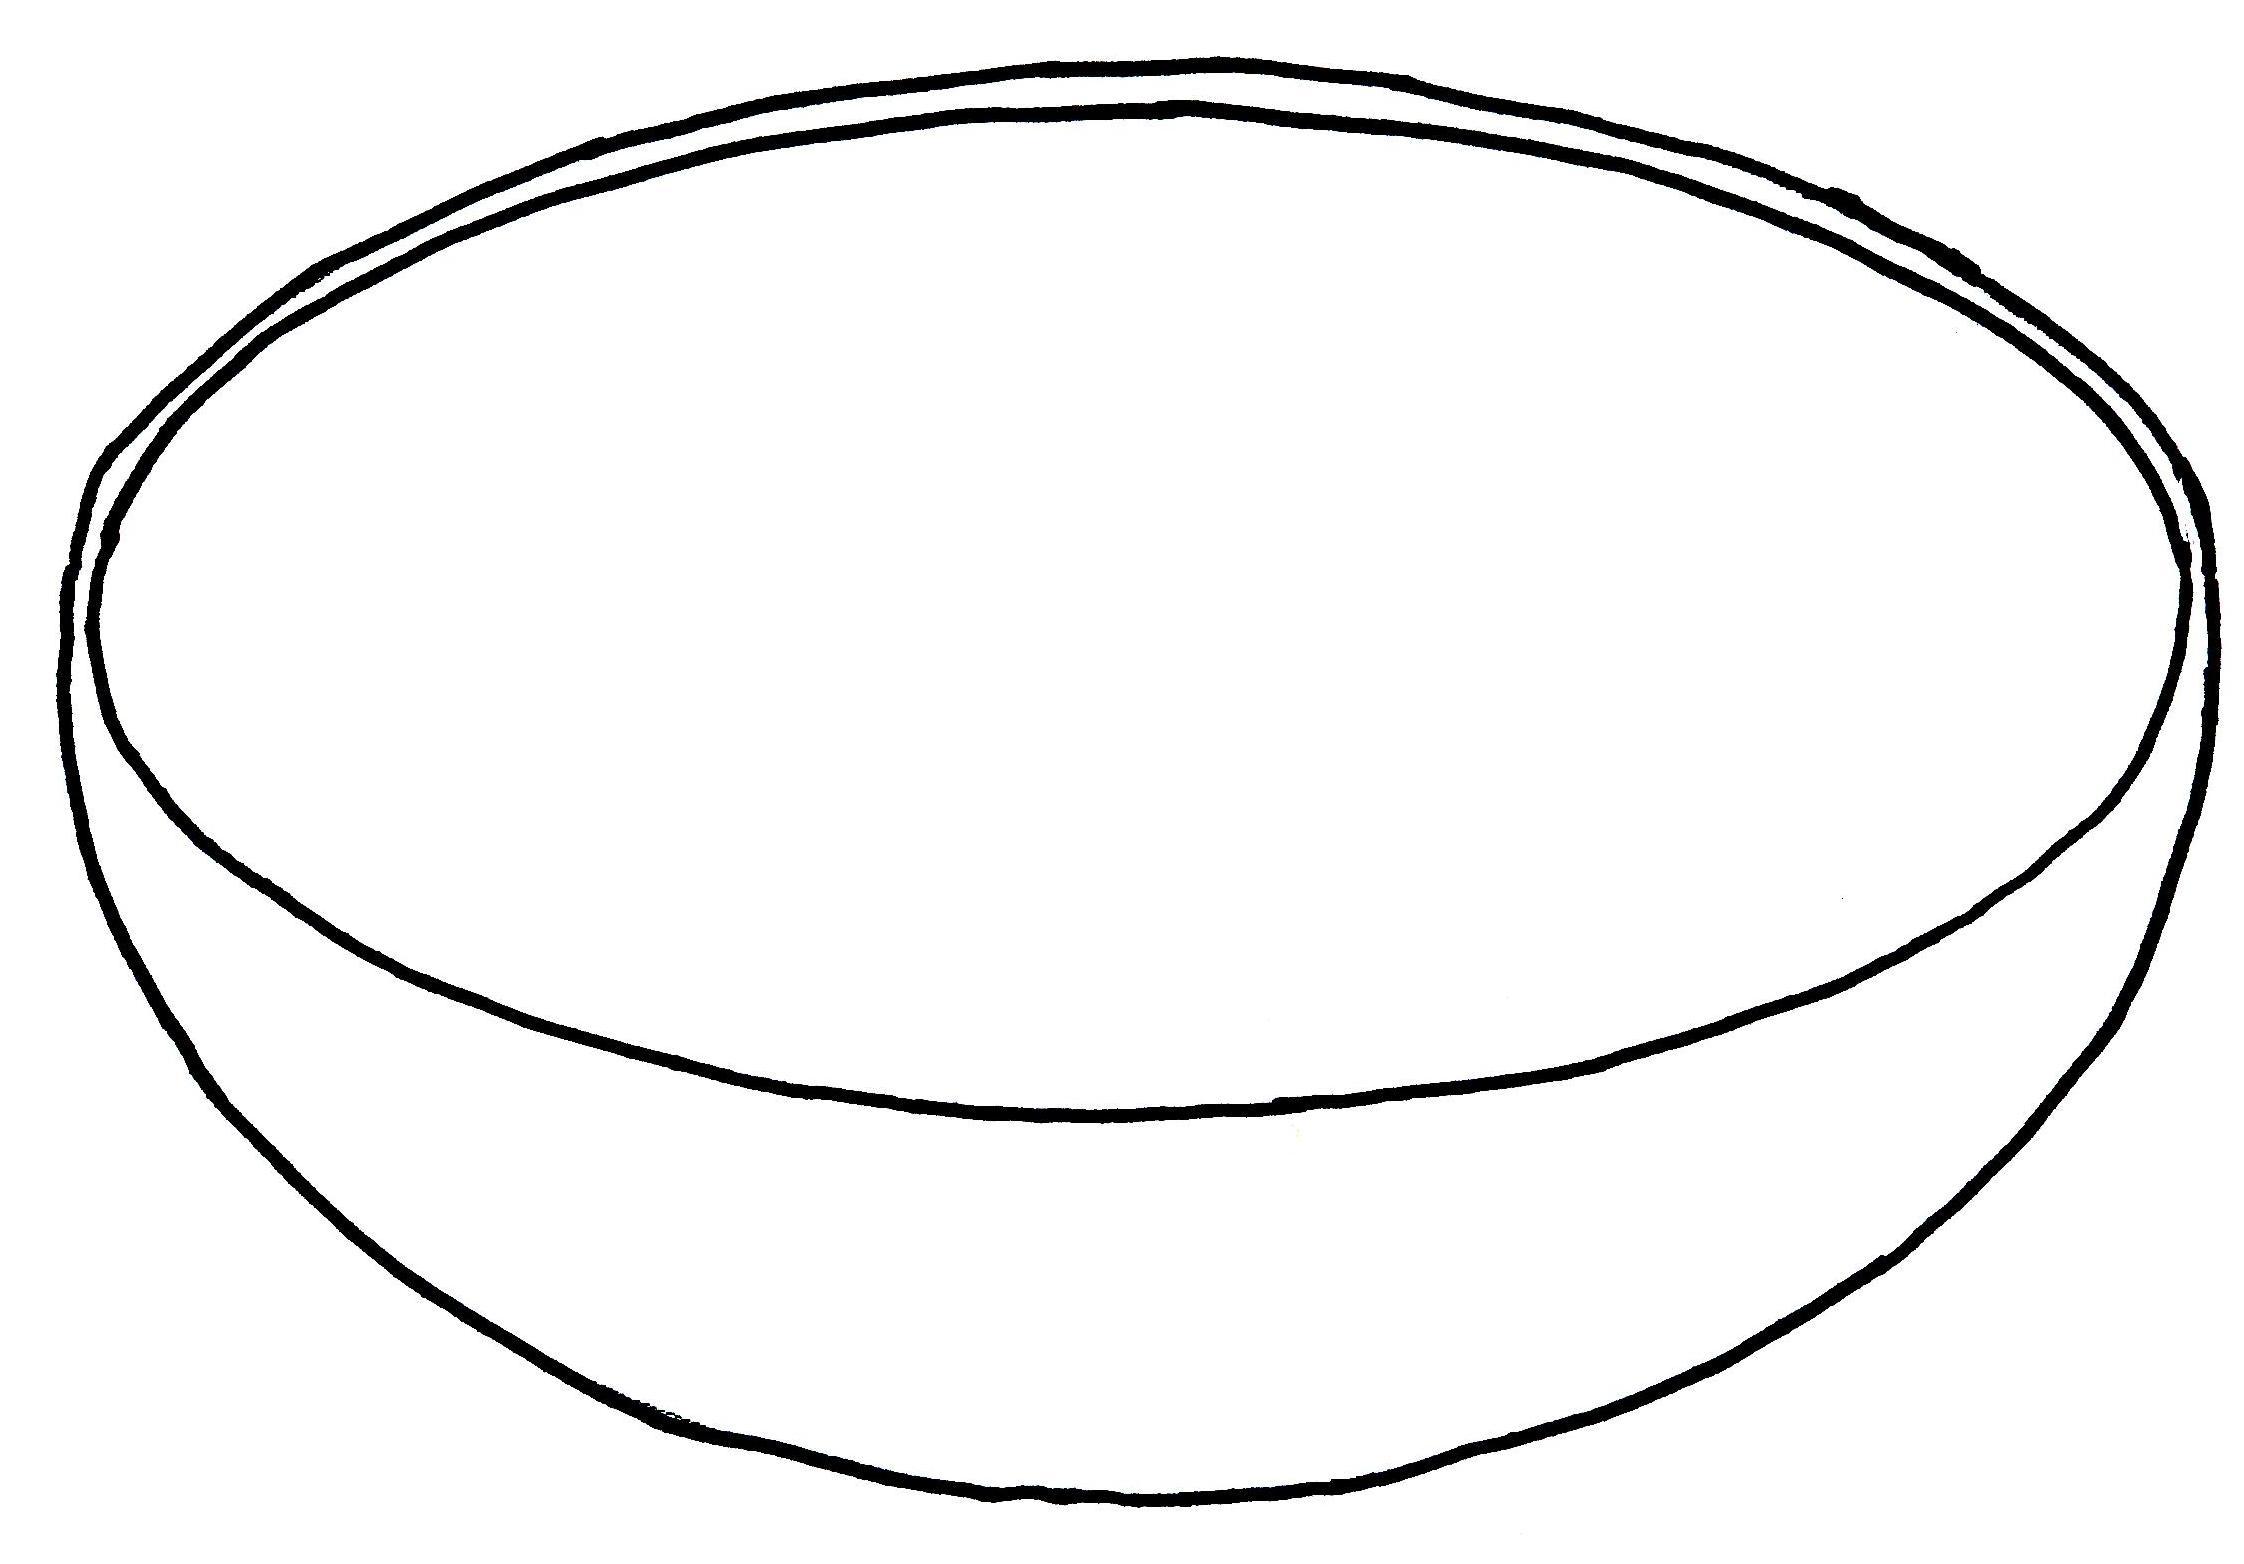 fruit bowl pictures to colour bowl coloring page clipart best colour bowl to pictures fruit